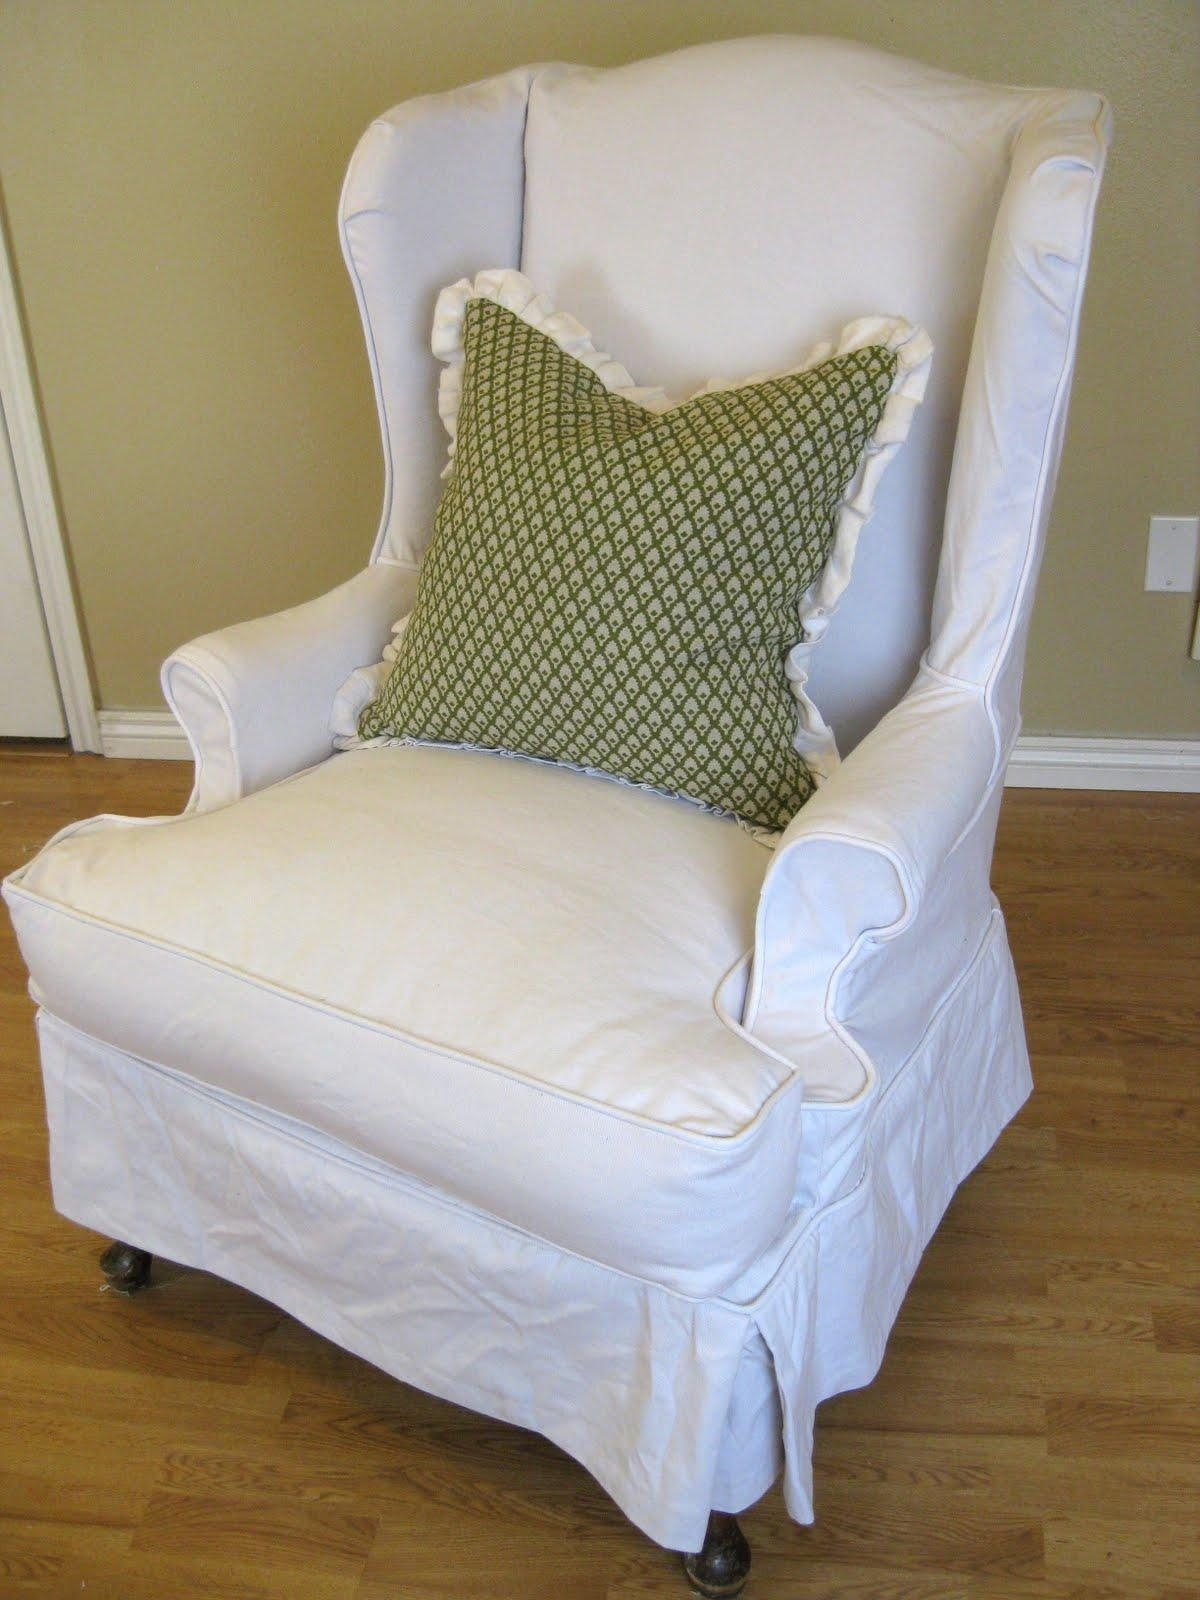 Ideas: Chic Pottery Barn Slipcovers For Better Sofa And Chair Look Pertaining To Pottery Barn Chair Slipcovers (View 6 of 20)